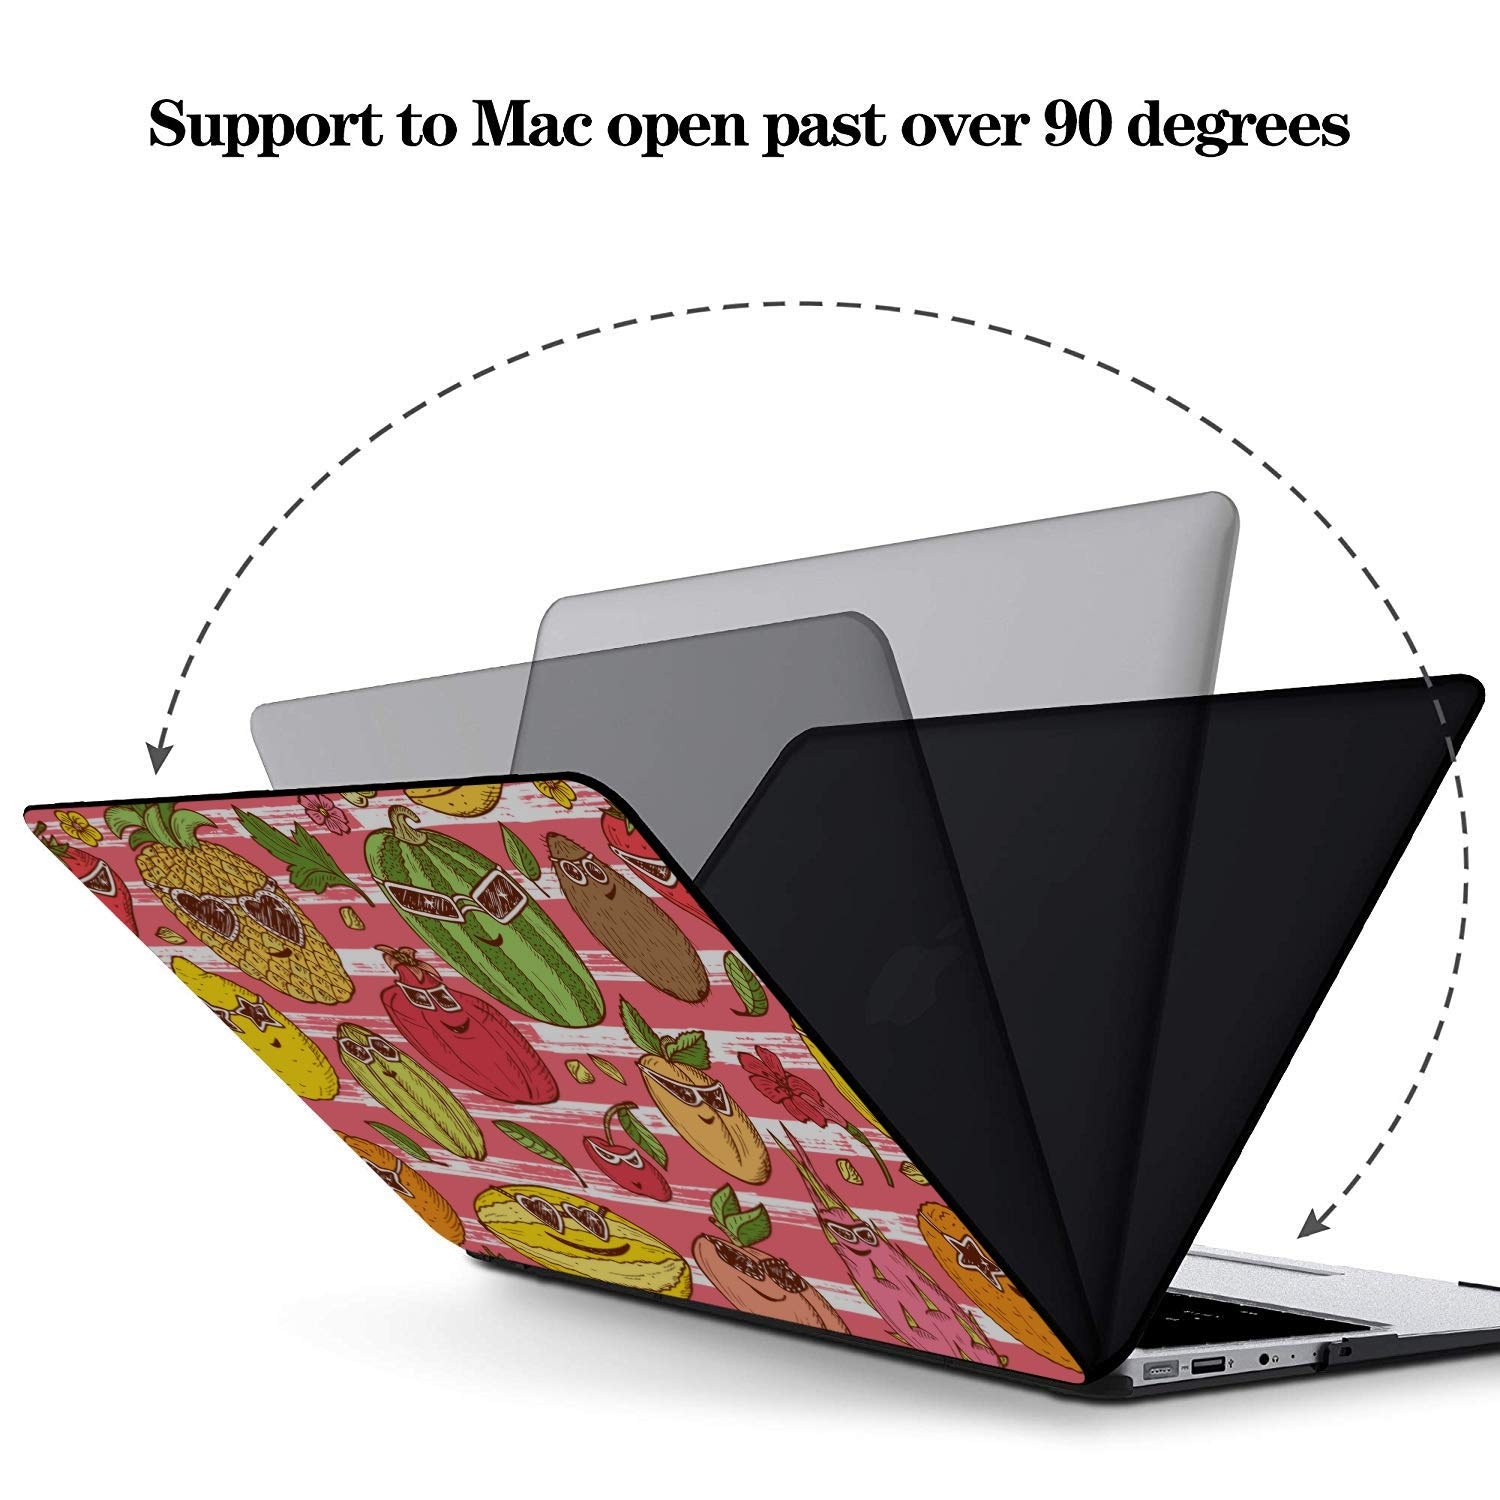 Cover MacBook Pro Summer Fashion Fruit Dragon Love Plastic Hard Shell Compatible Mac Air 11 Pro 13 15 MacBook Pro 13inch Case Protection for MacBook 2016-2019 Version